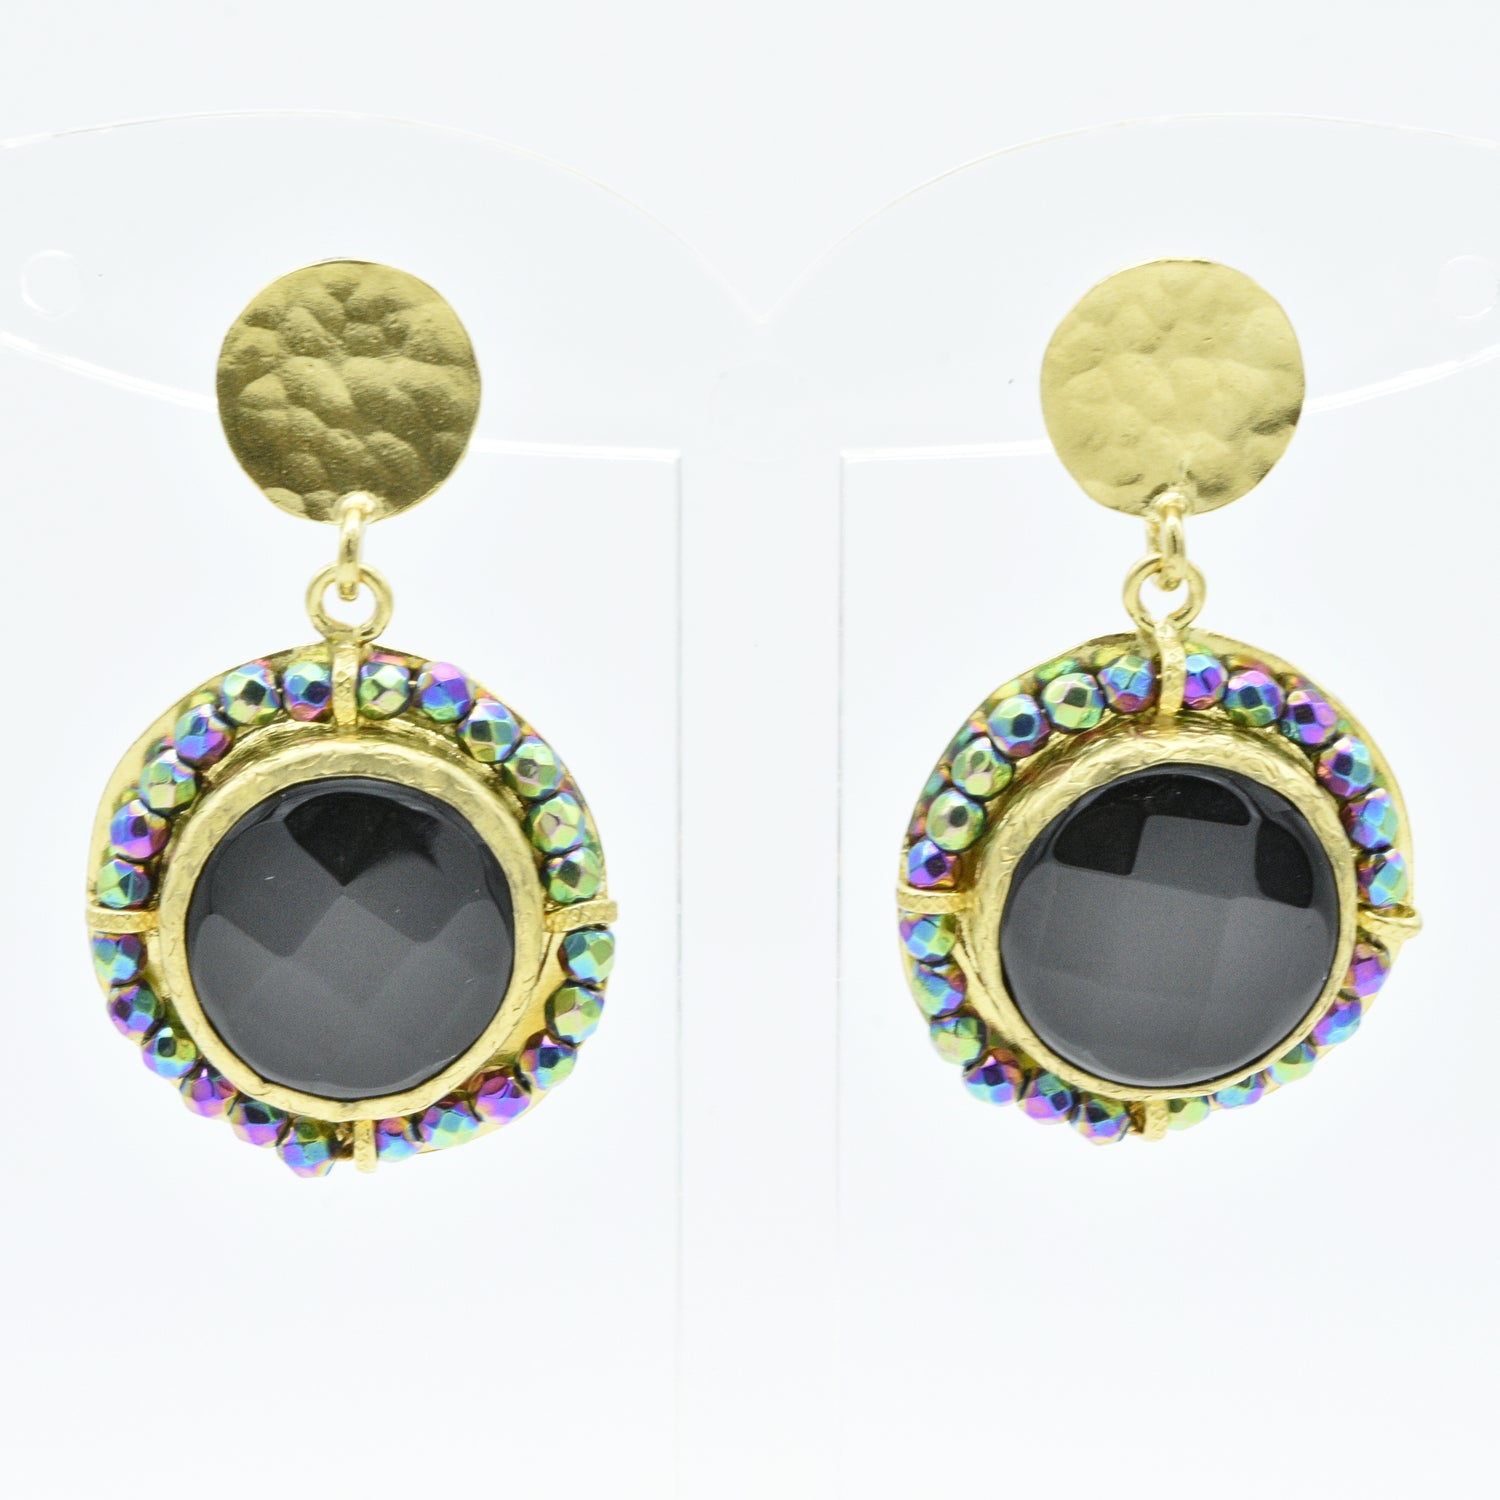 Aylas Onyx and Mystic Gem earrings - 21ct Gold plated semi precious gemstone - Handmade in Ottoman Style by Artisan